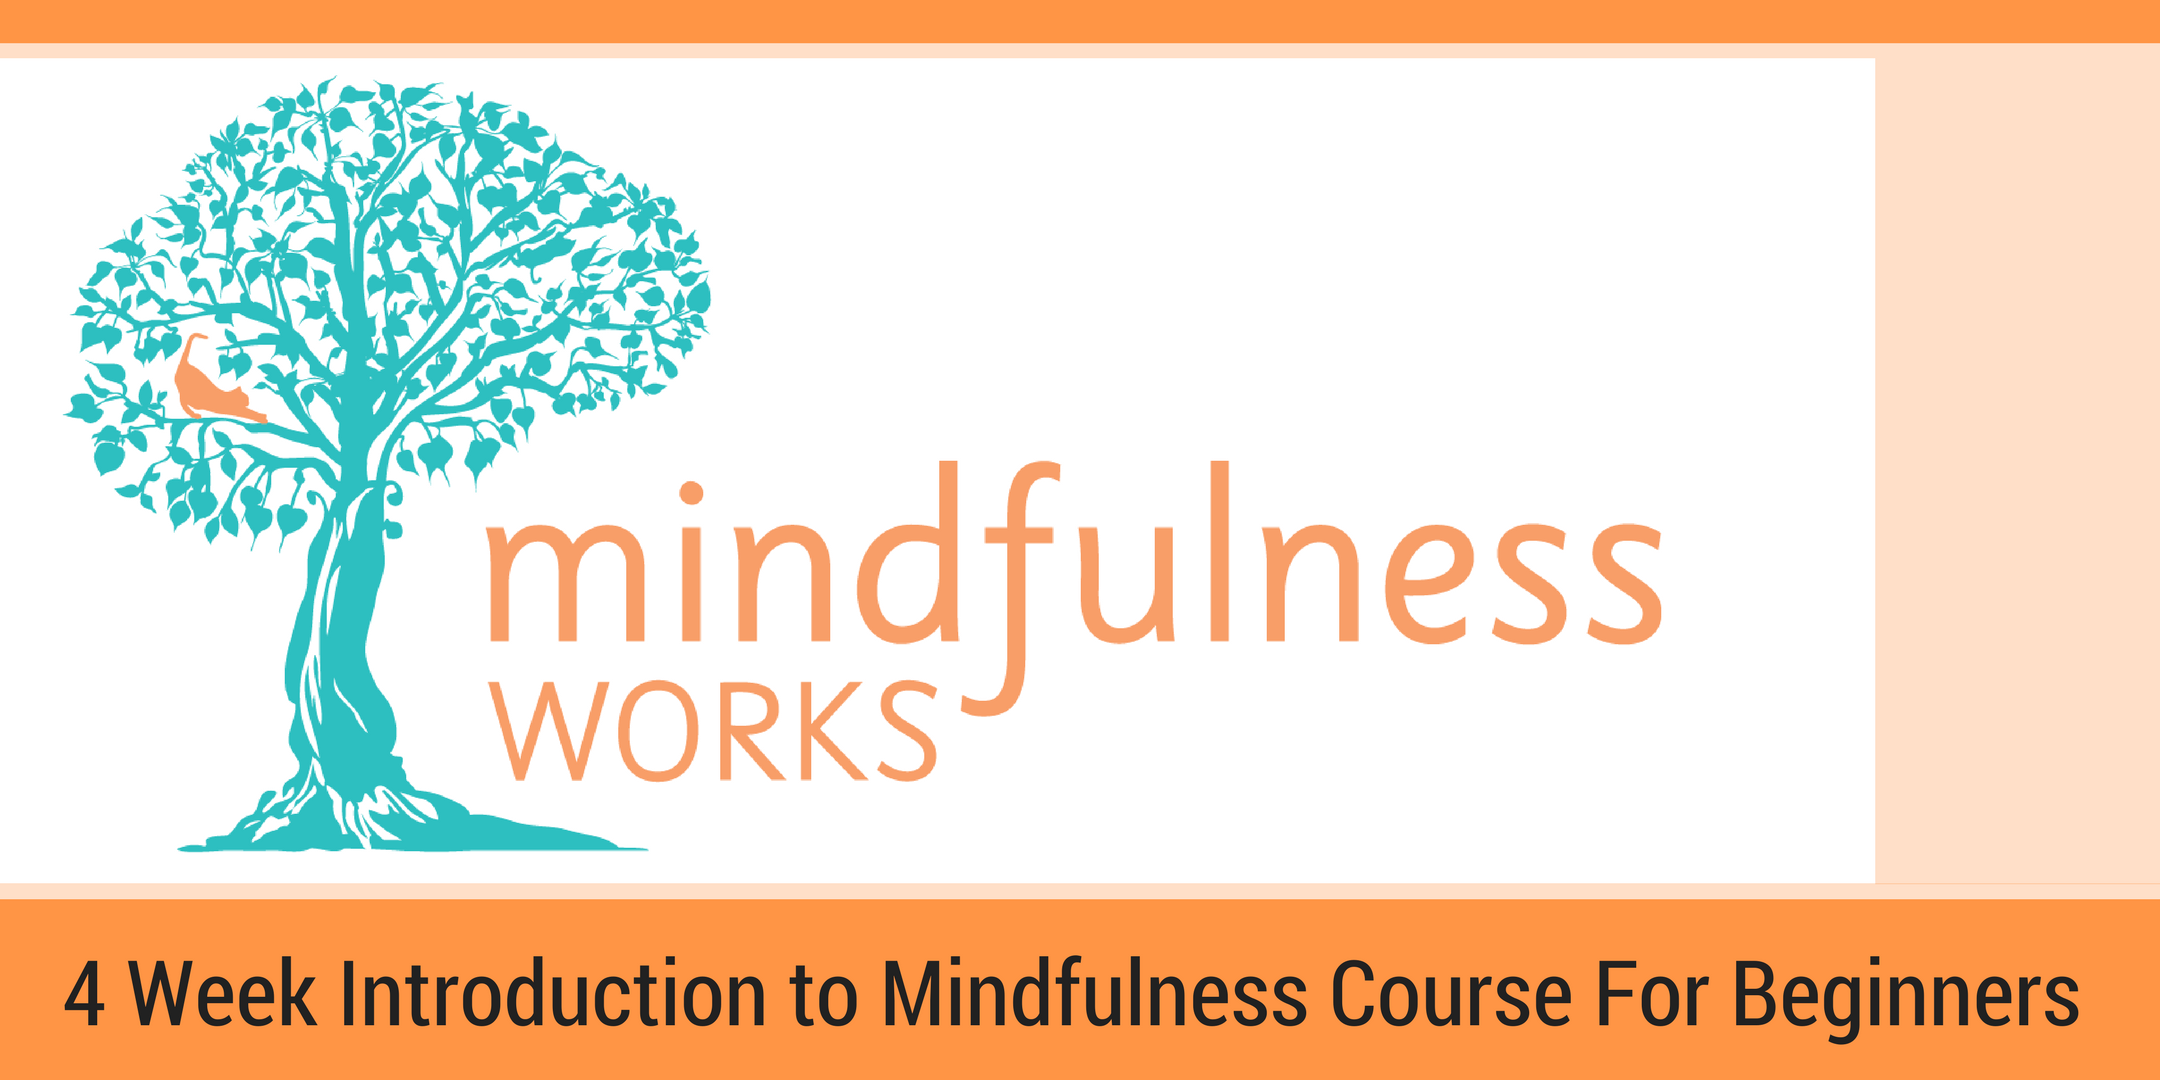 (POSTPONED) West Perth – An Introduction to Mindfulness & Meditation 4 Week Course